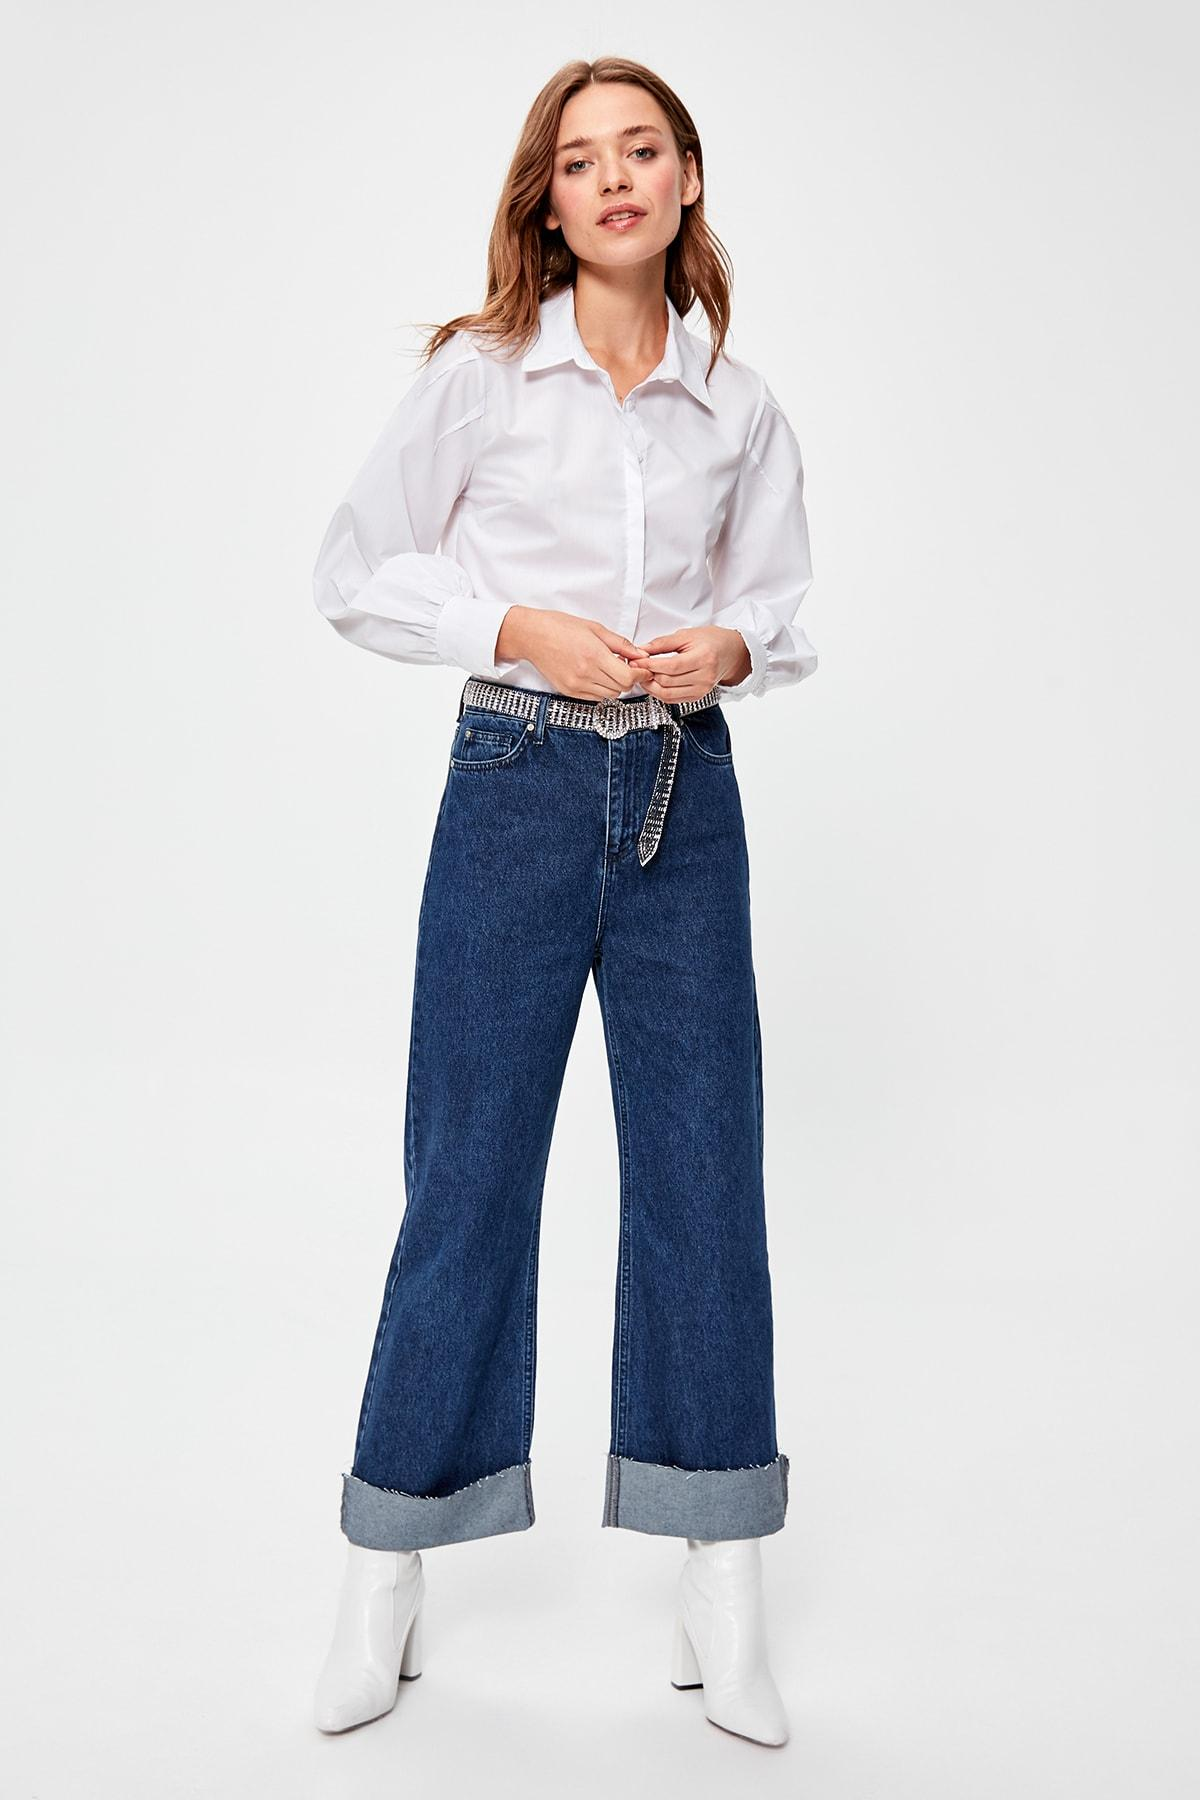 Trendyol Blue Pettitoes Folding Detailed High Bel Wide Leg Jeans TWOAW20JE0177